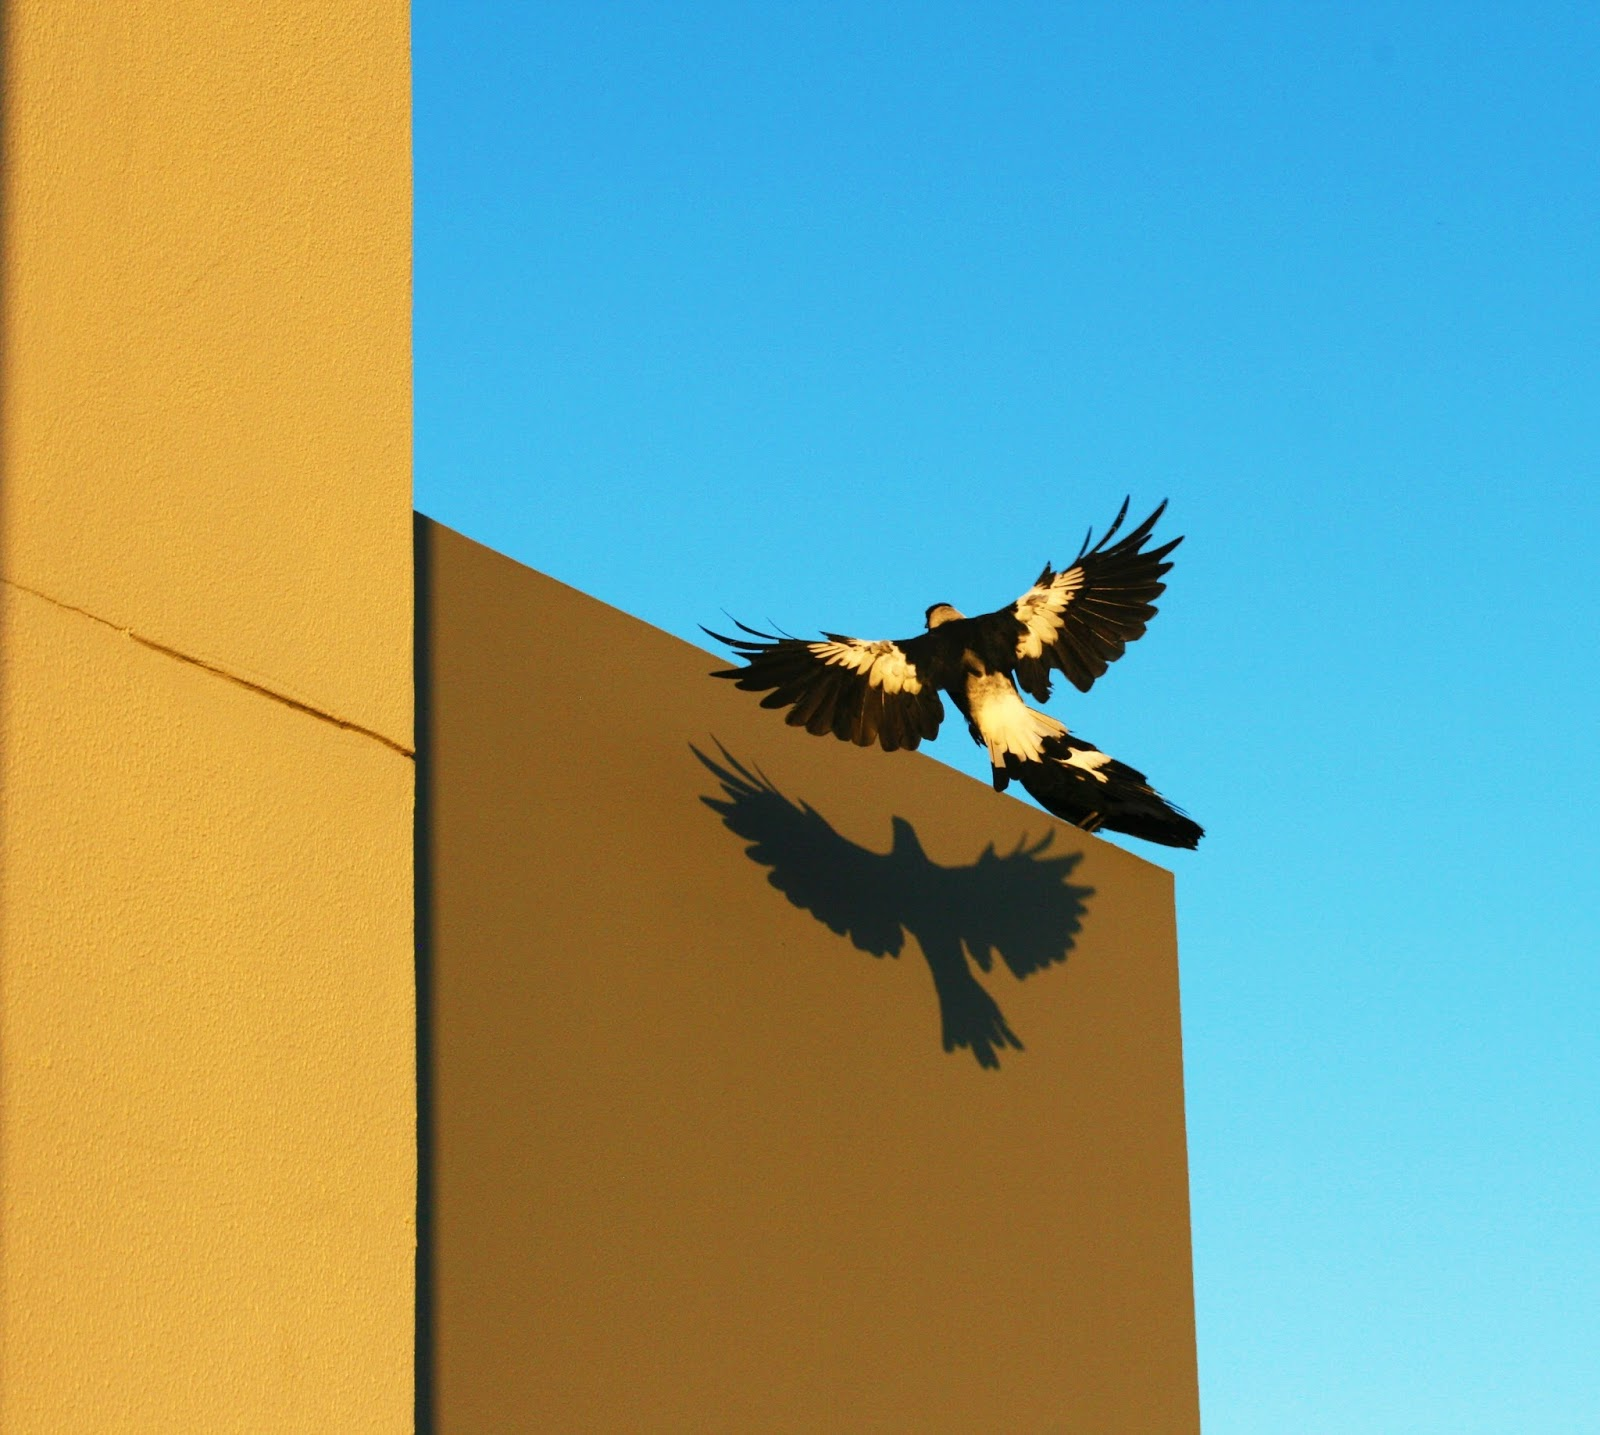 Picture of a magpie casting it's own shadow on a wall.